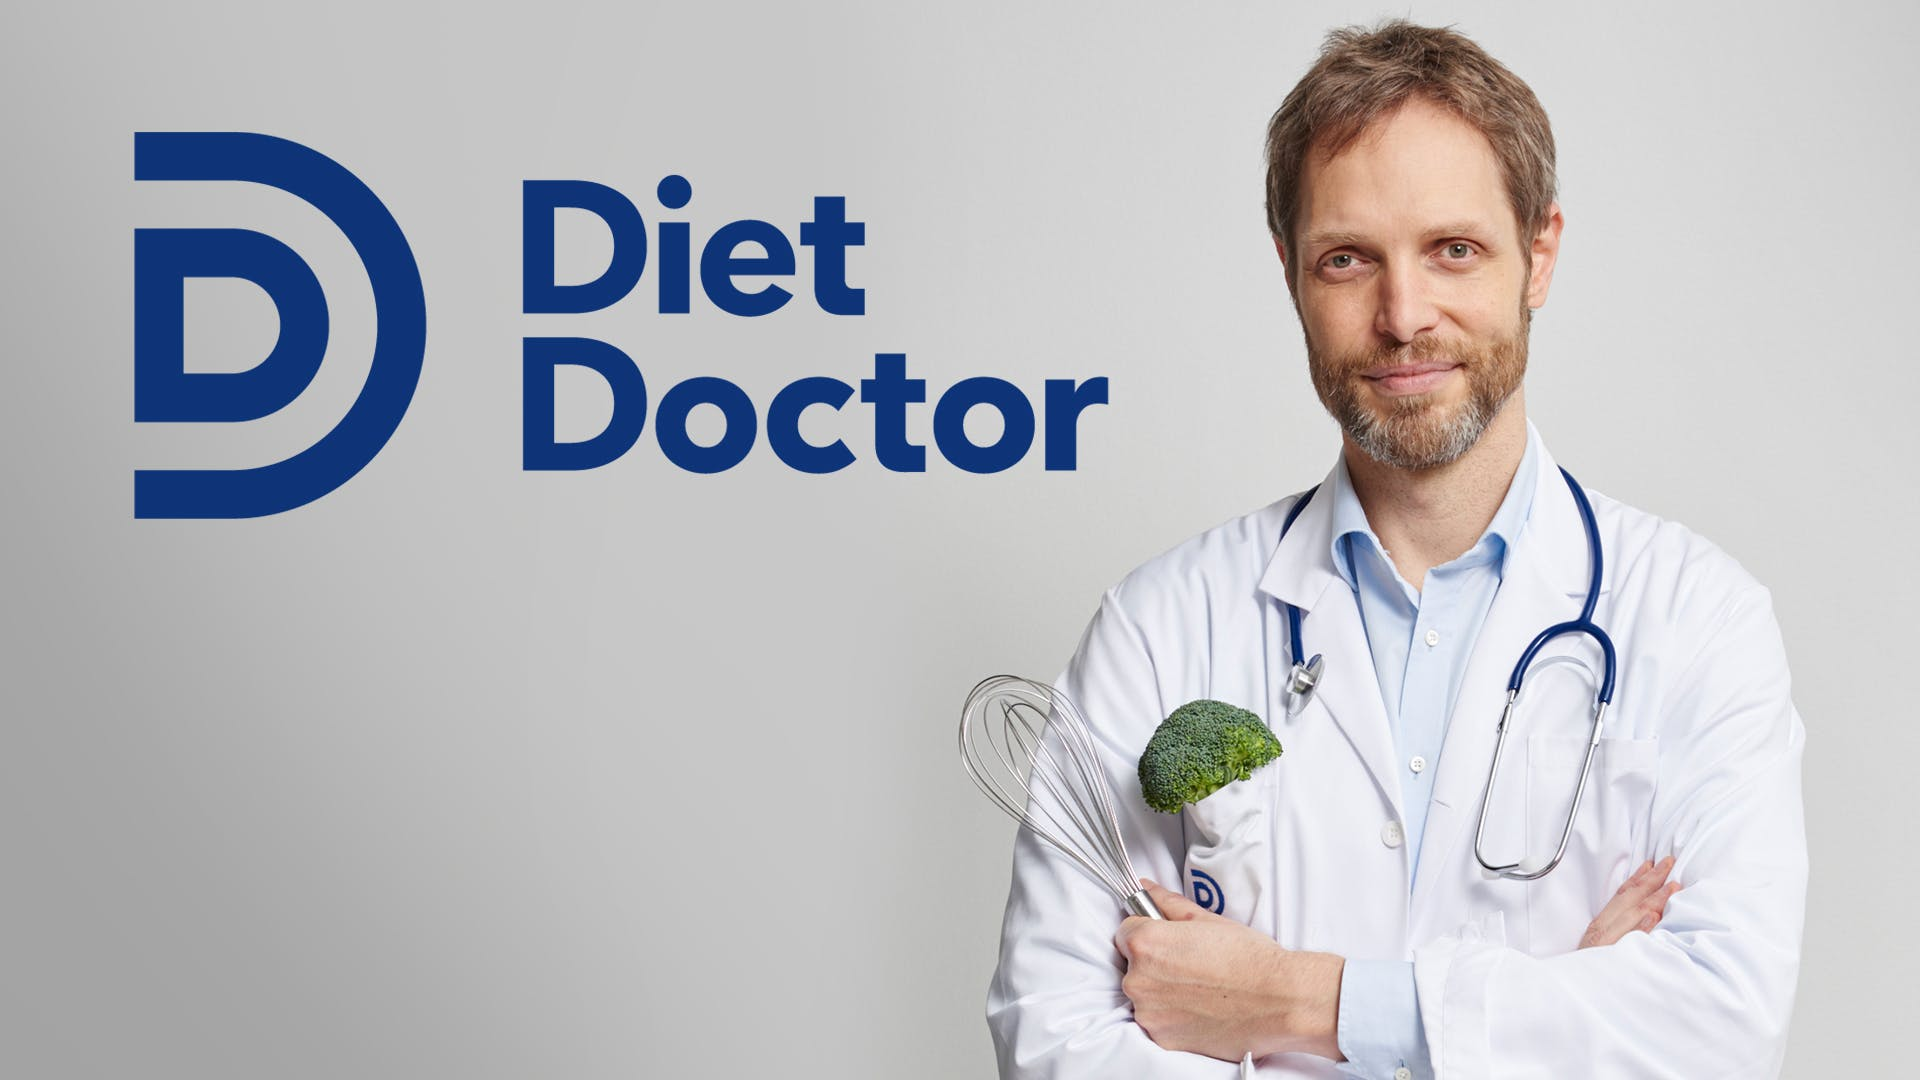 Upcoming new Diet Doctor design!